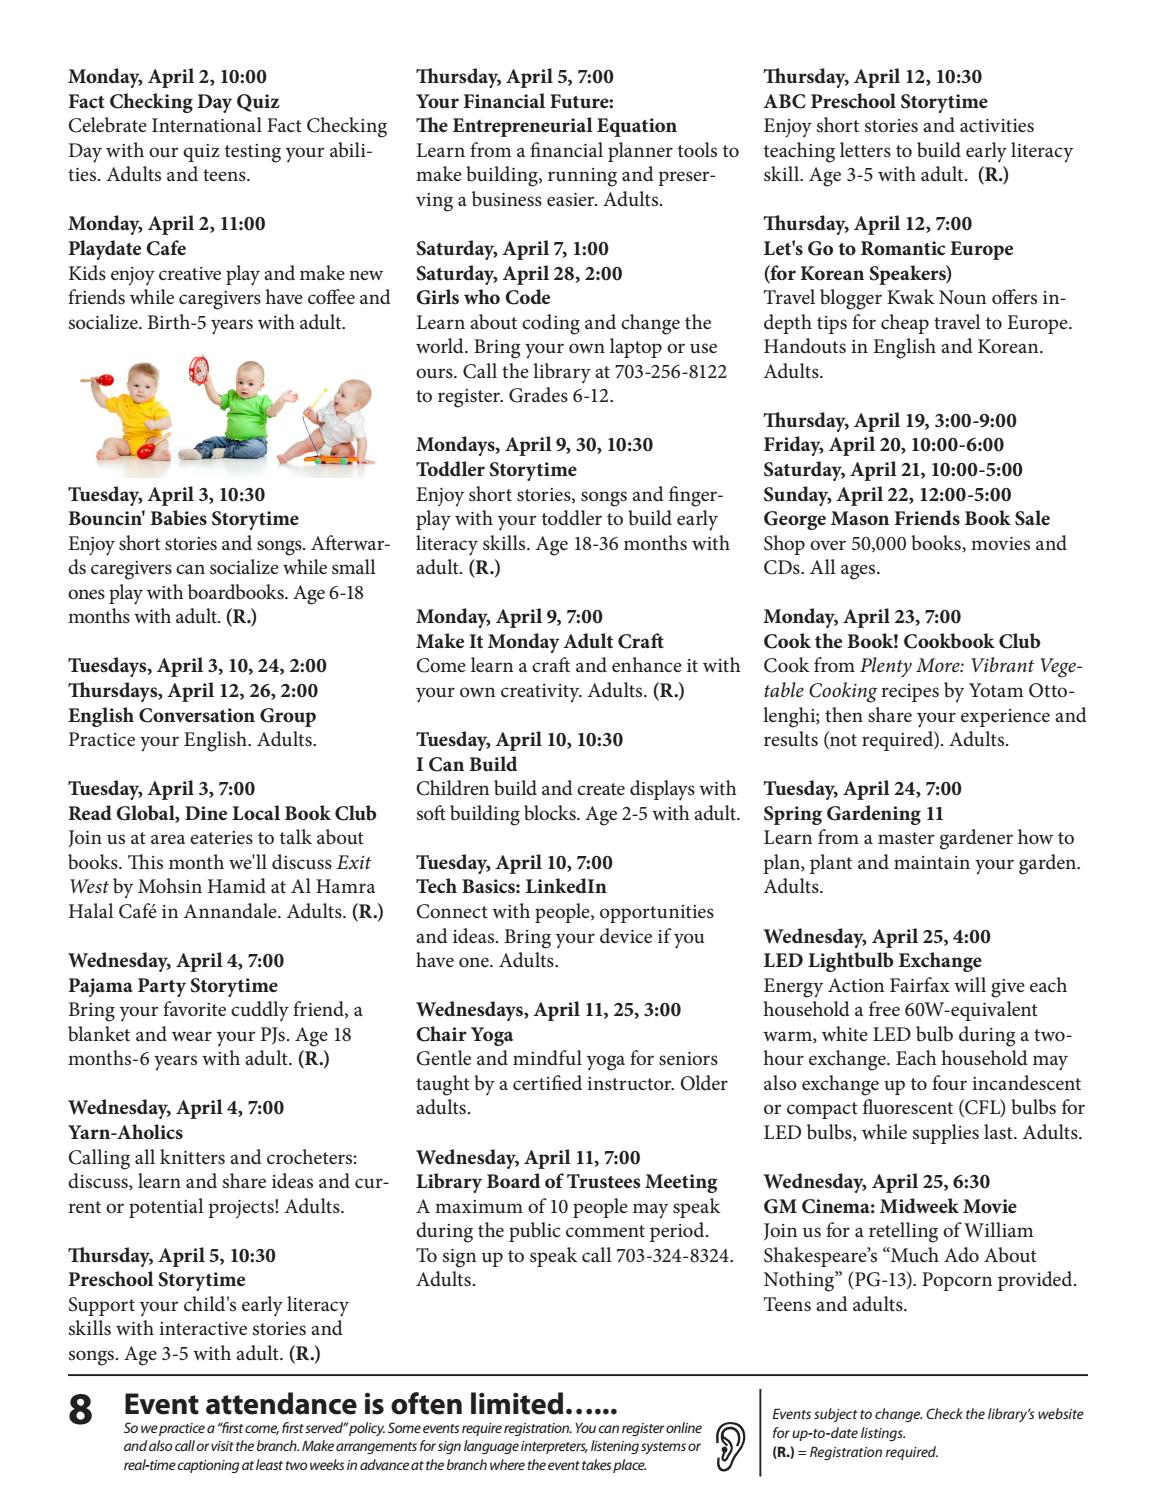 april 2018 free events calendarfairfax county public library - issuu